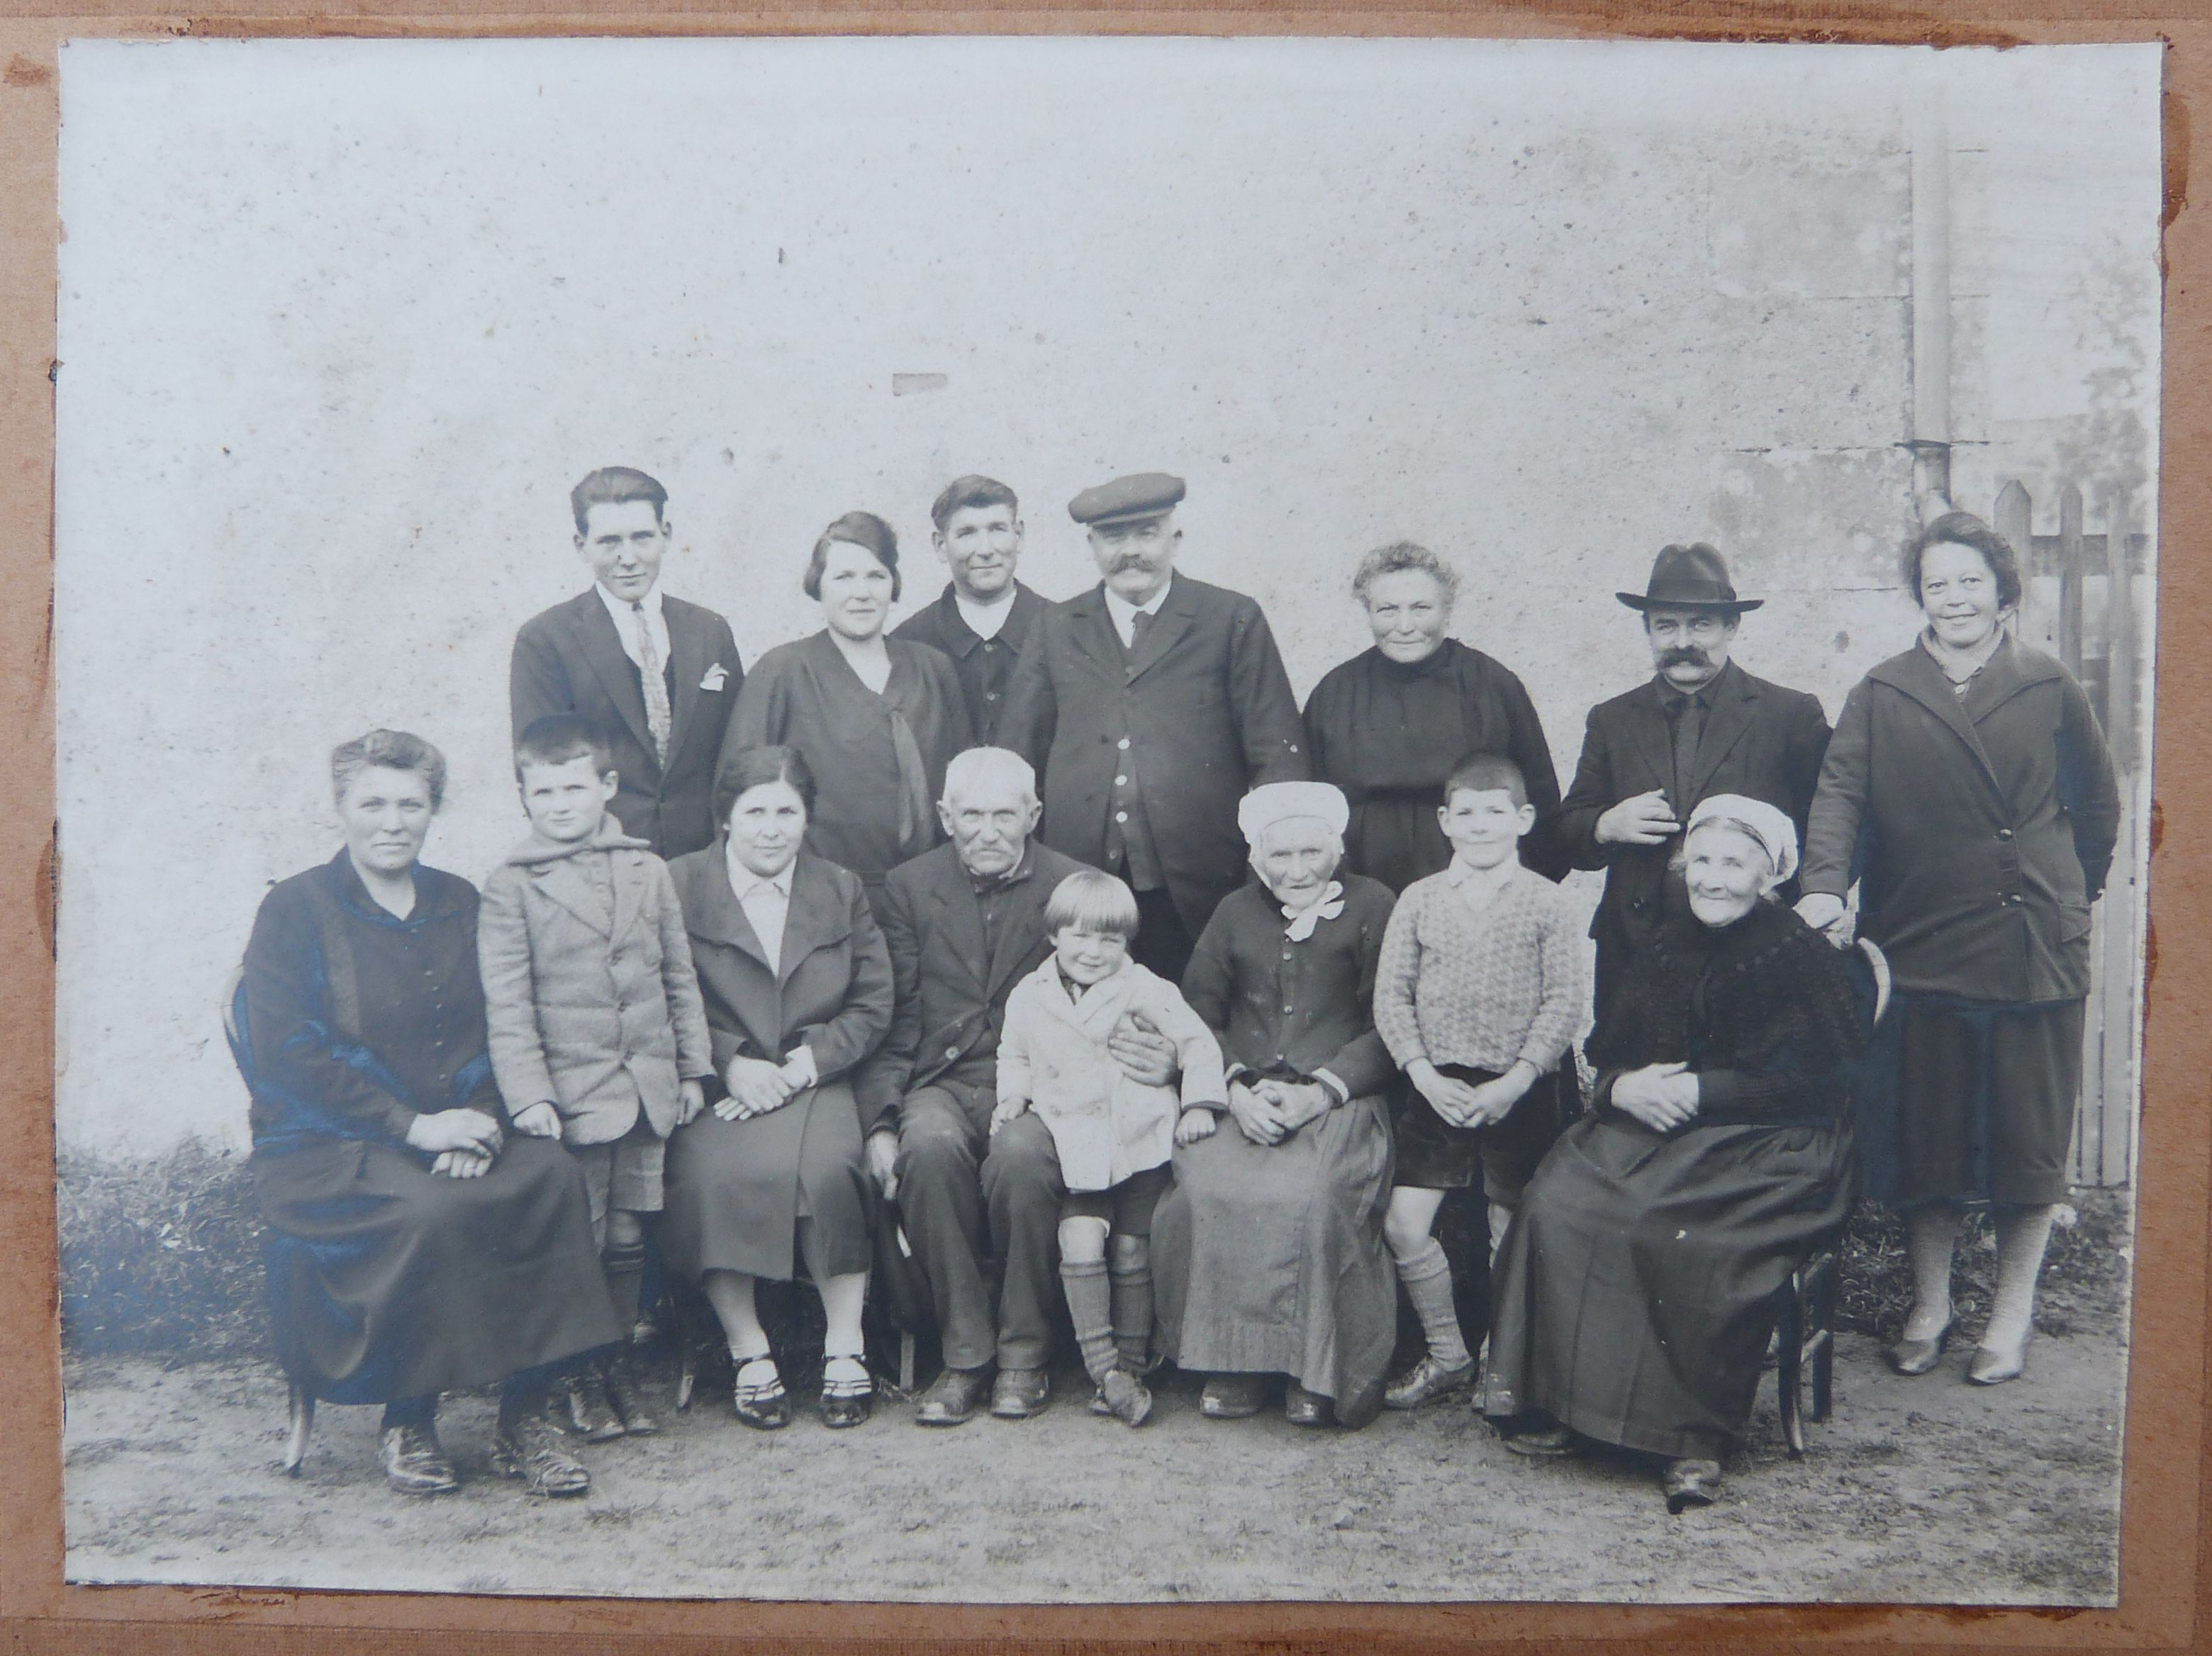 A Genealogy Slideshow